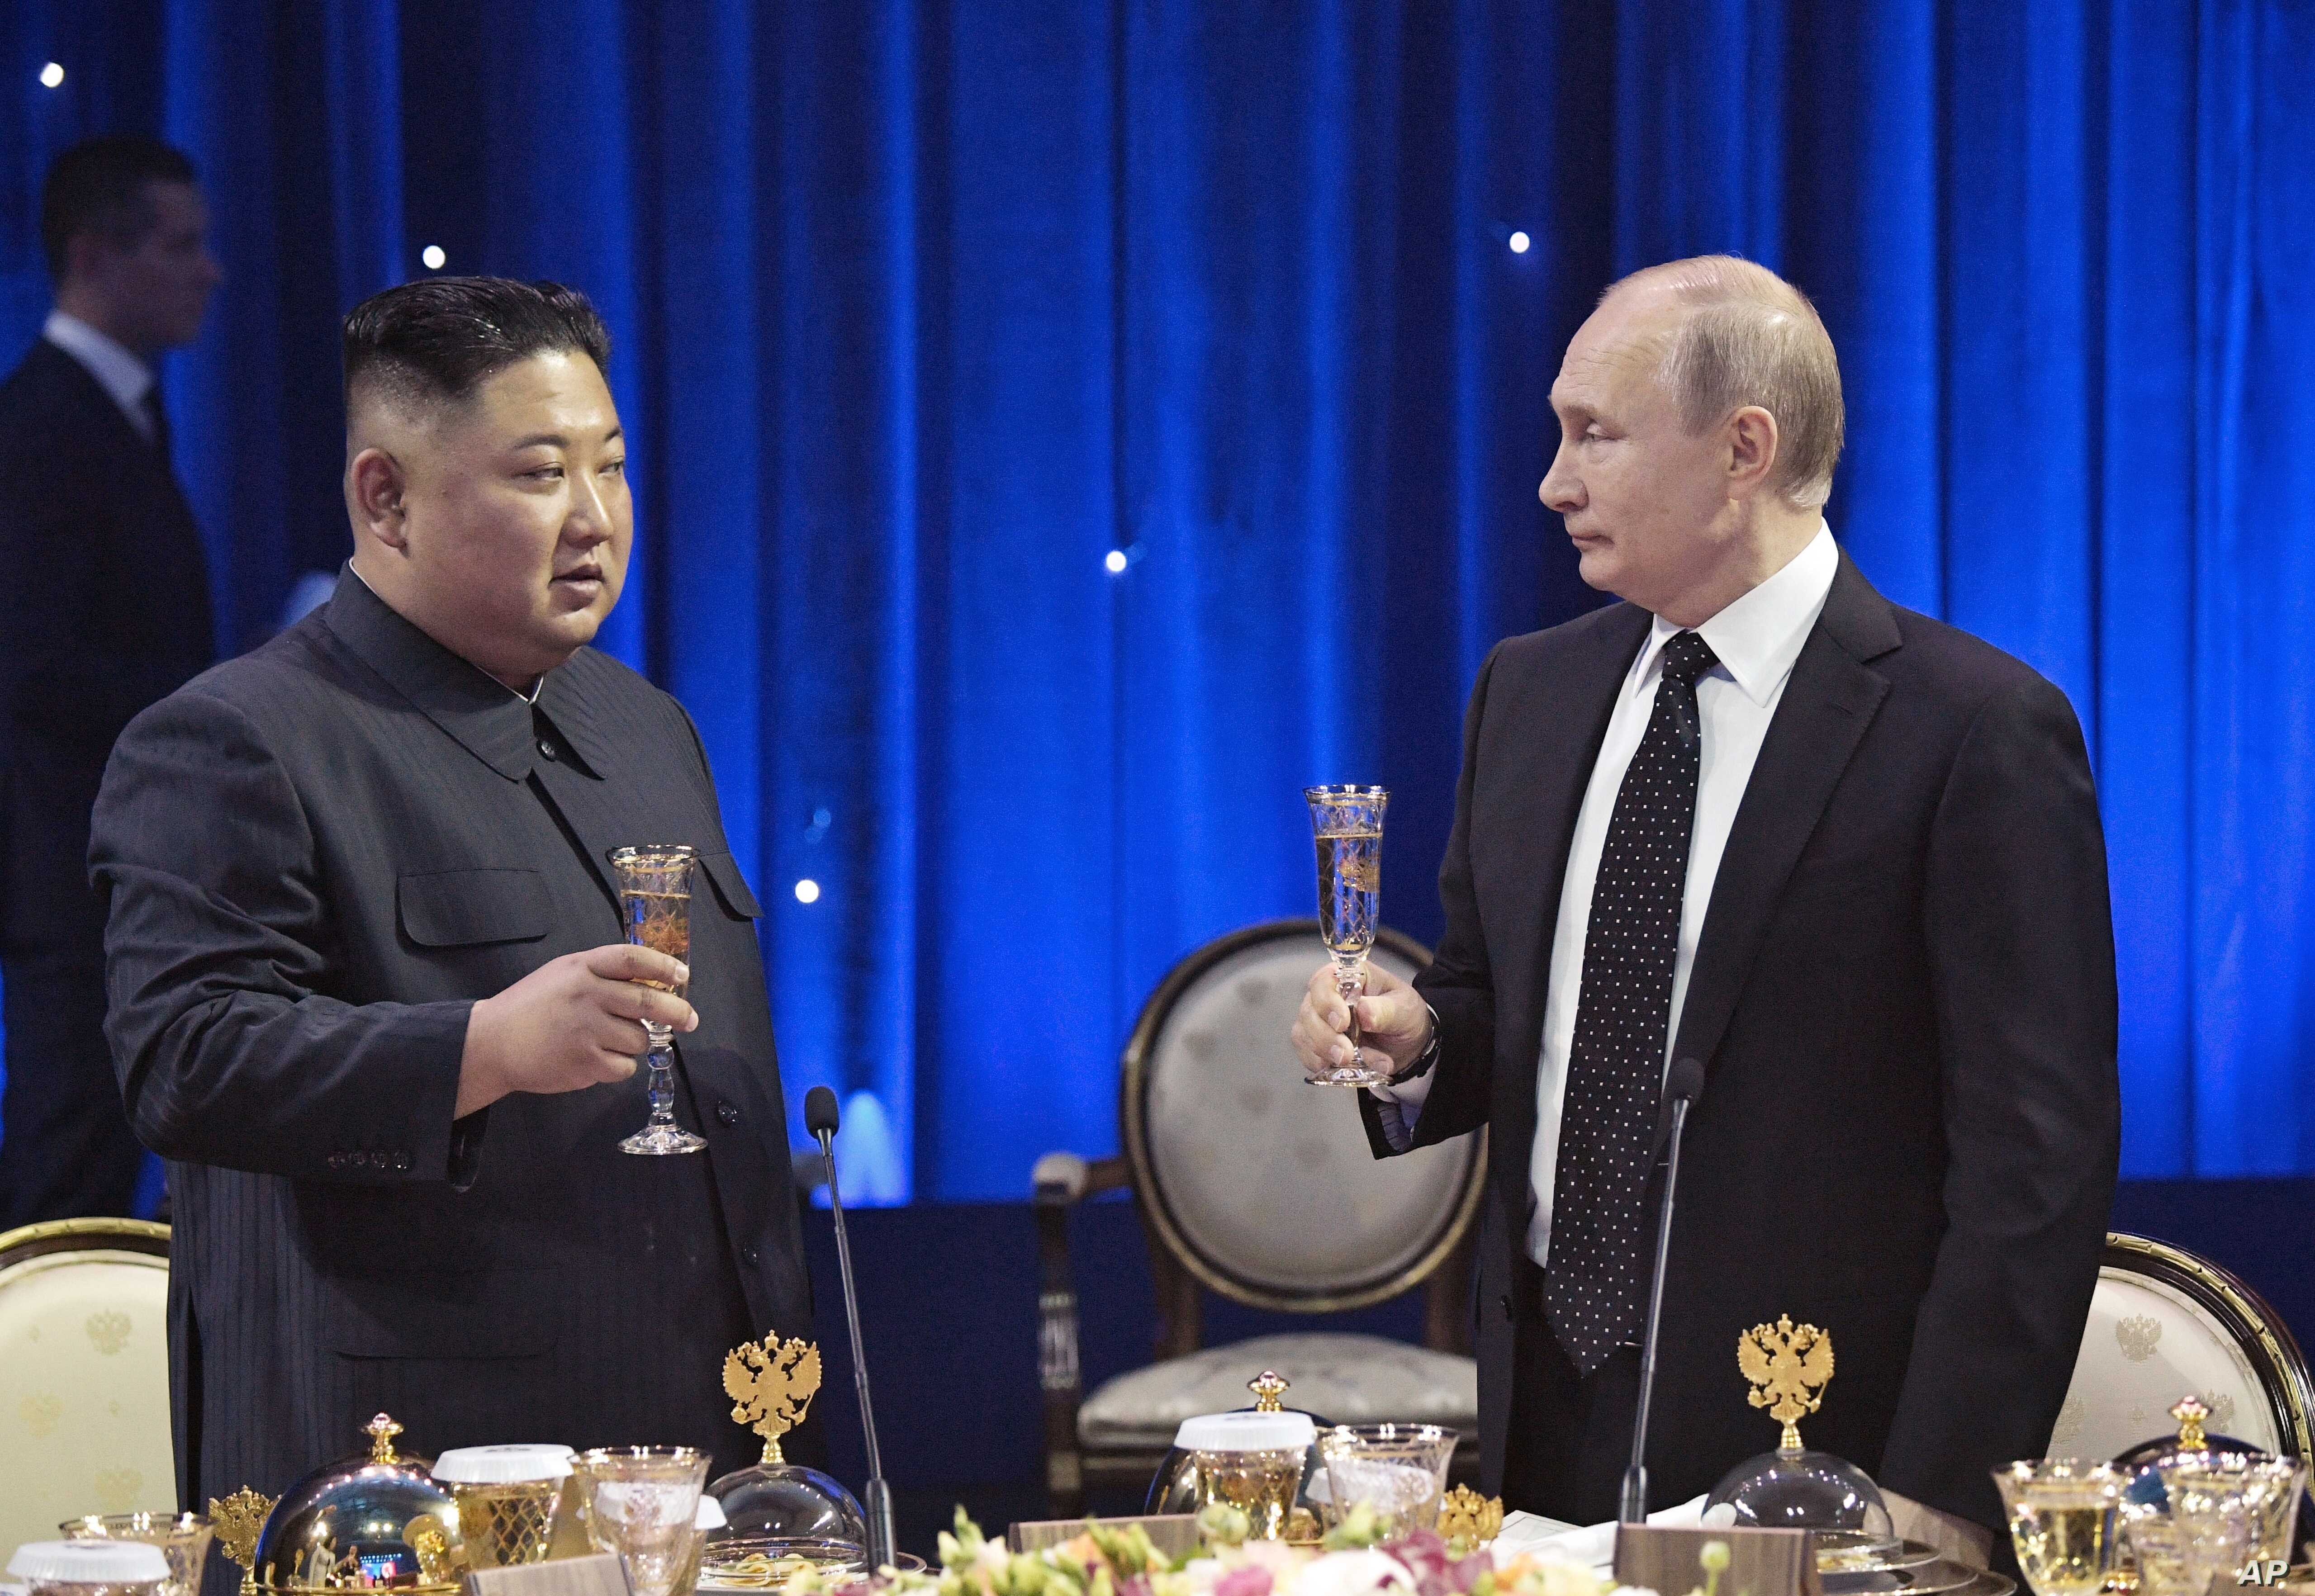 Russian President Vladimir Putin, right, toasts with North Korea's leader Kim Jong Un after their talks in Vladivostok, Russia, April 25, 2019.